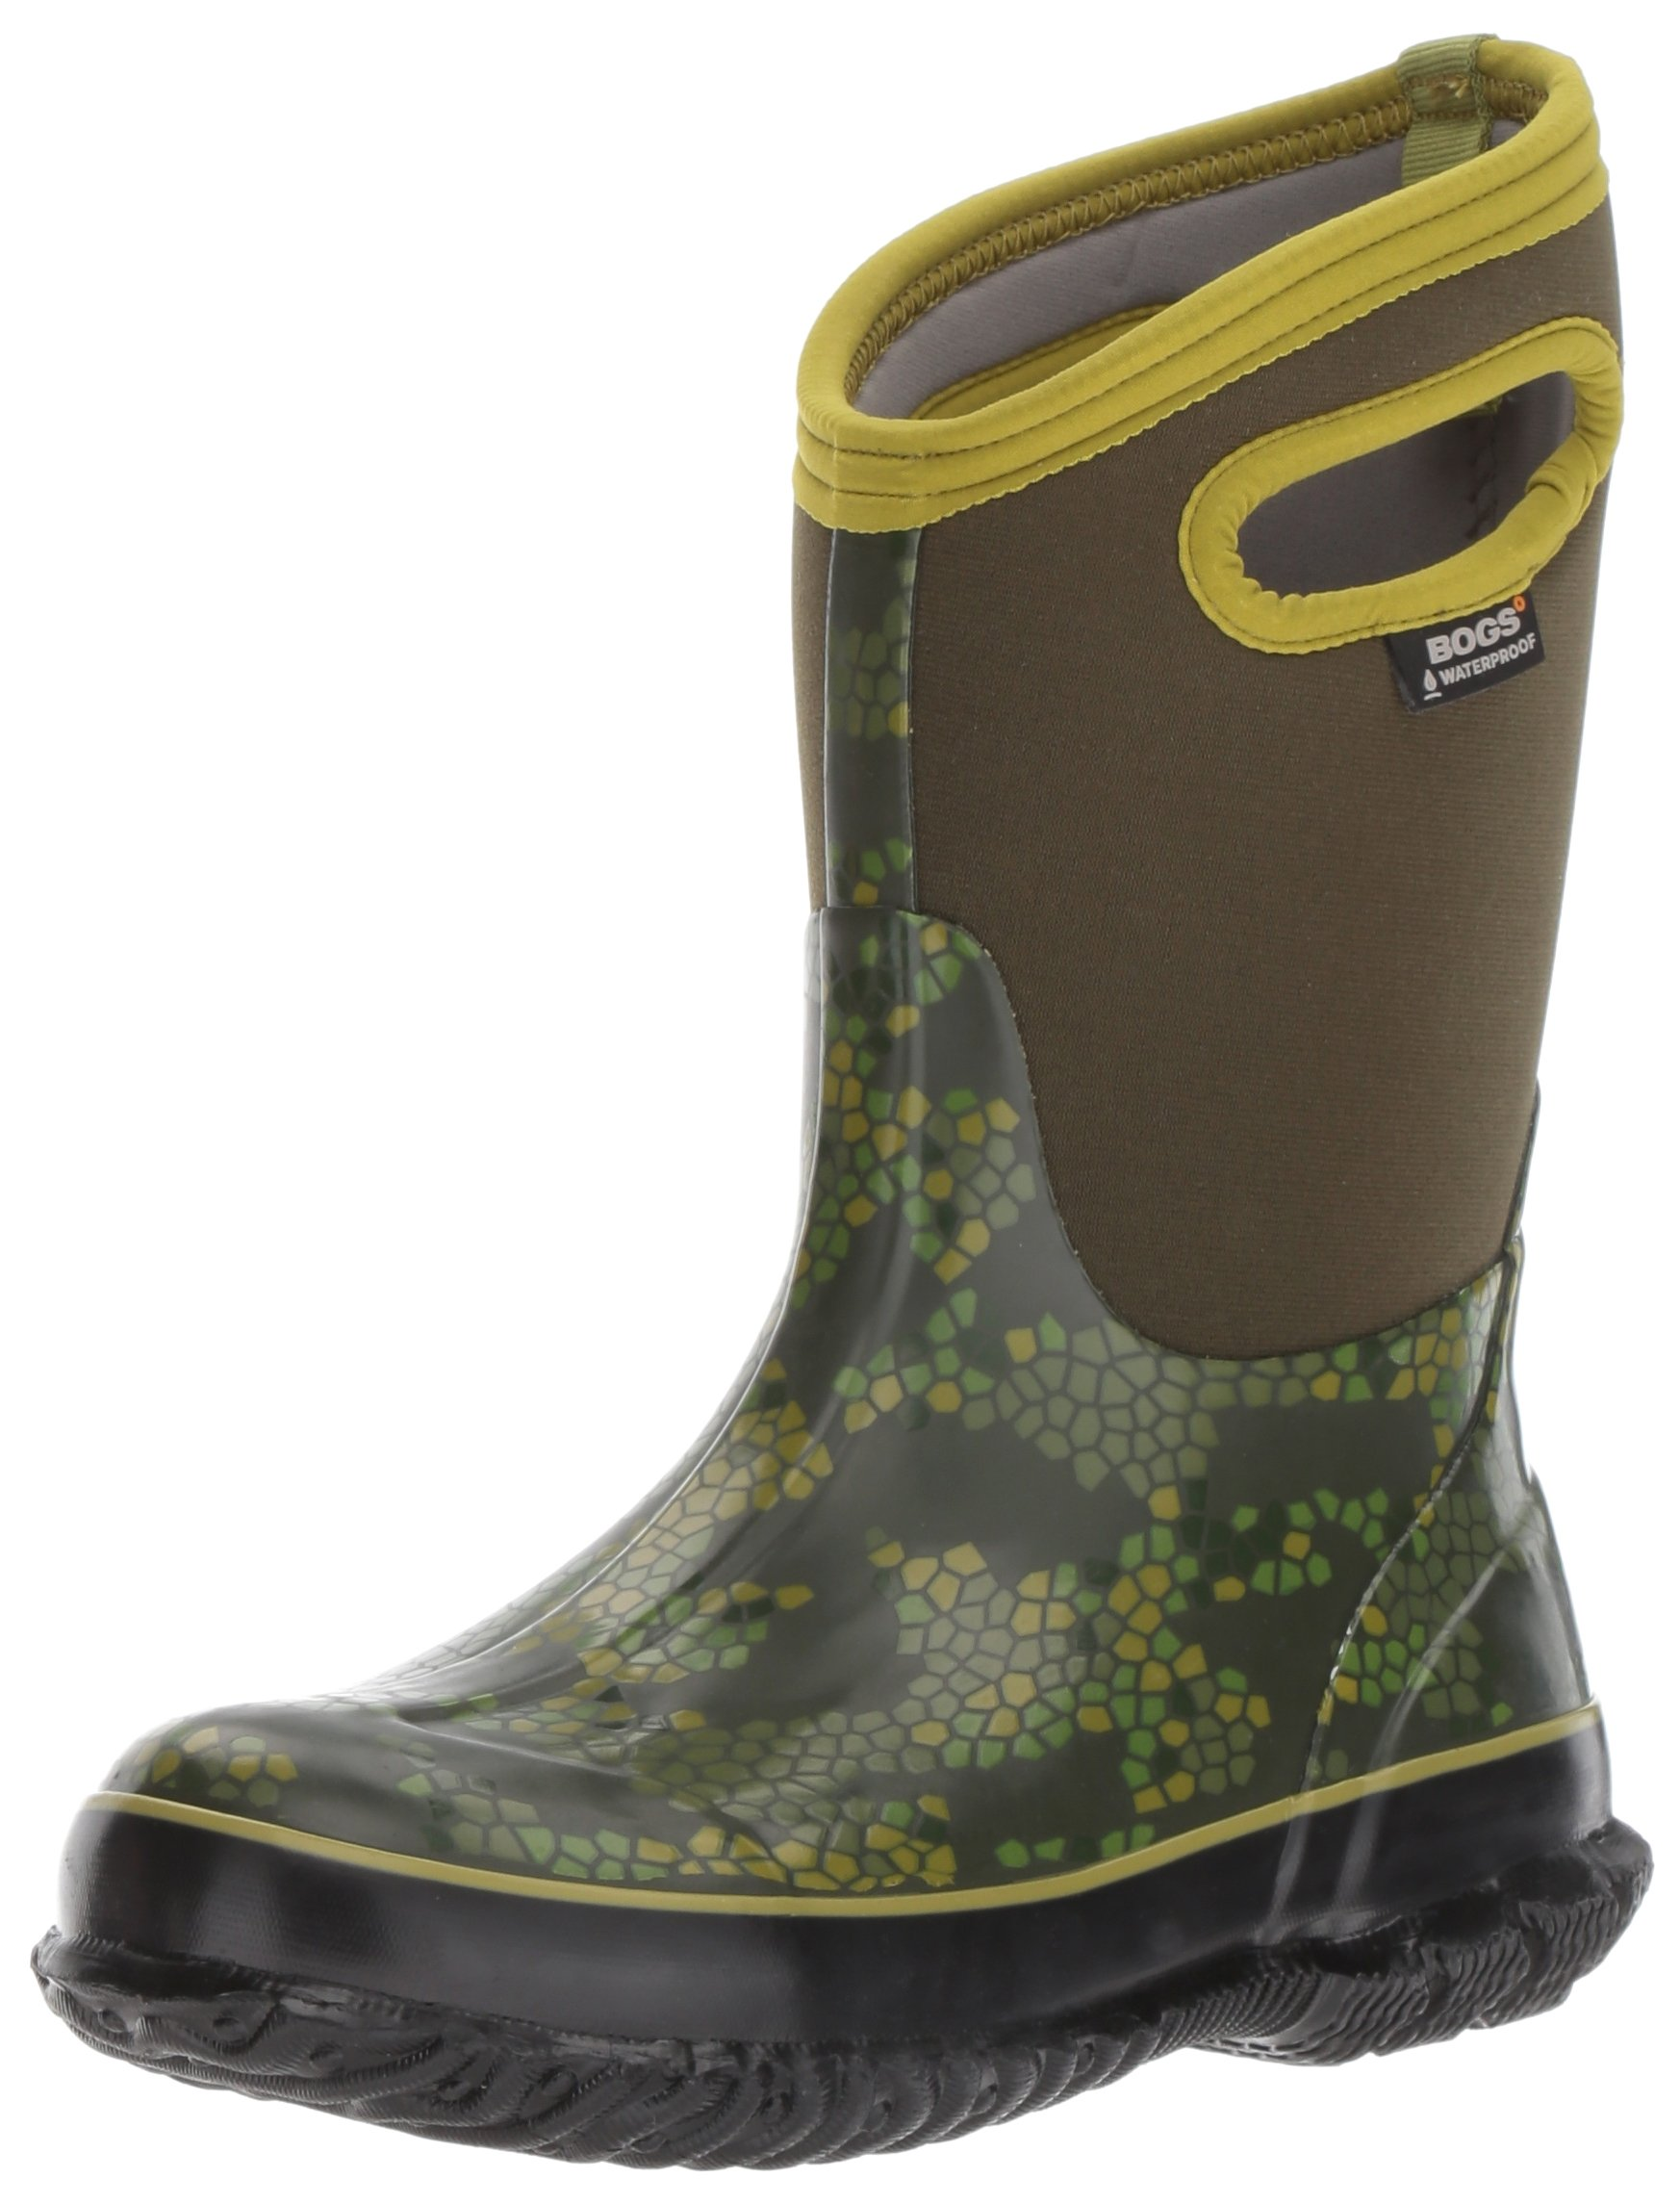 Bogs Classic High Waterproof Insulated Rubber